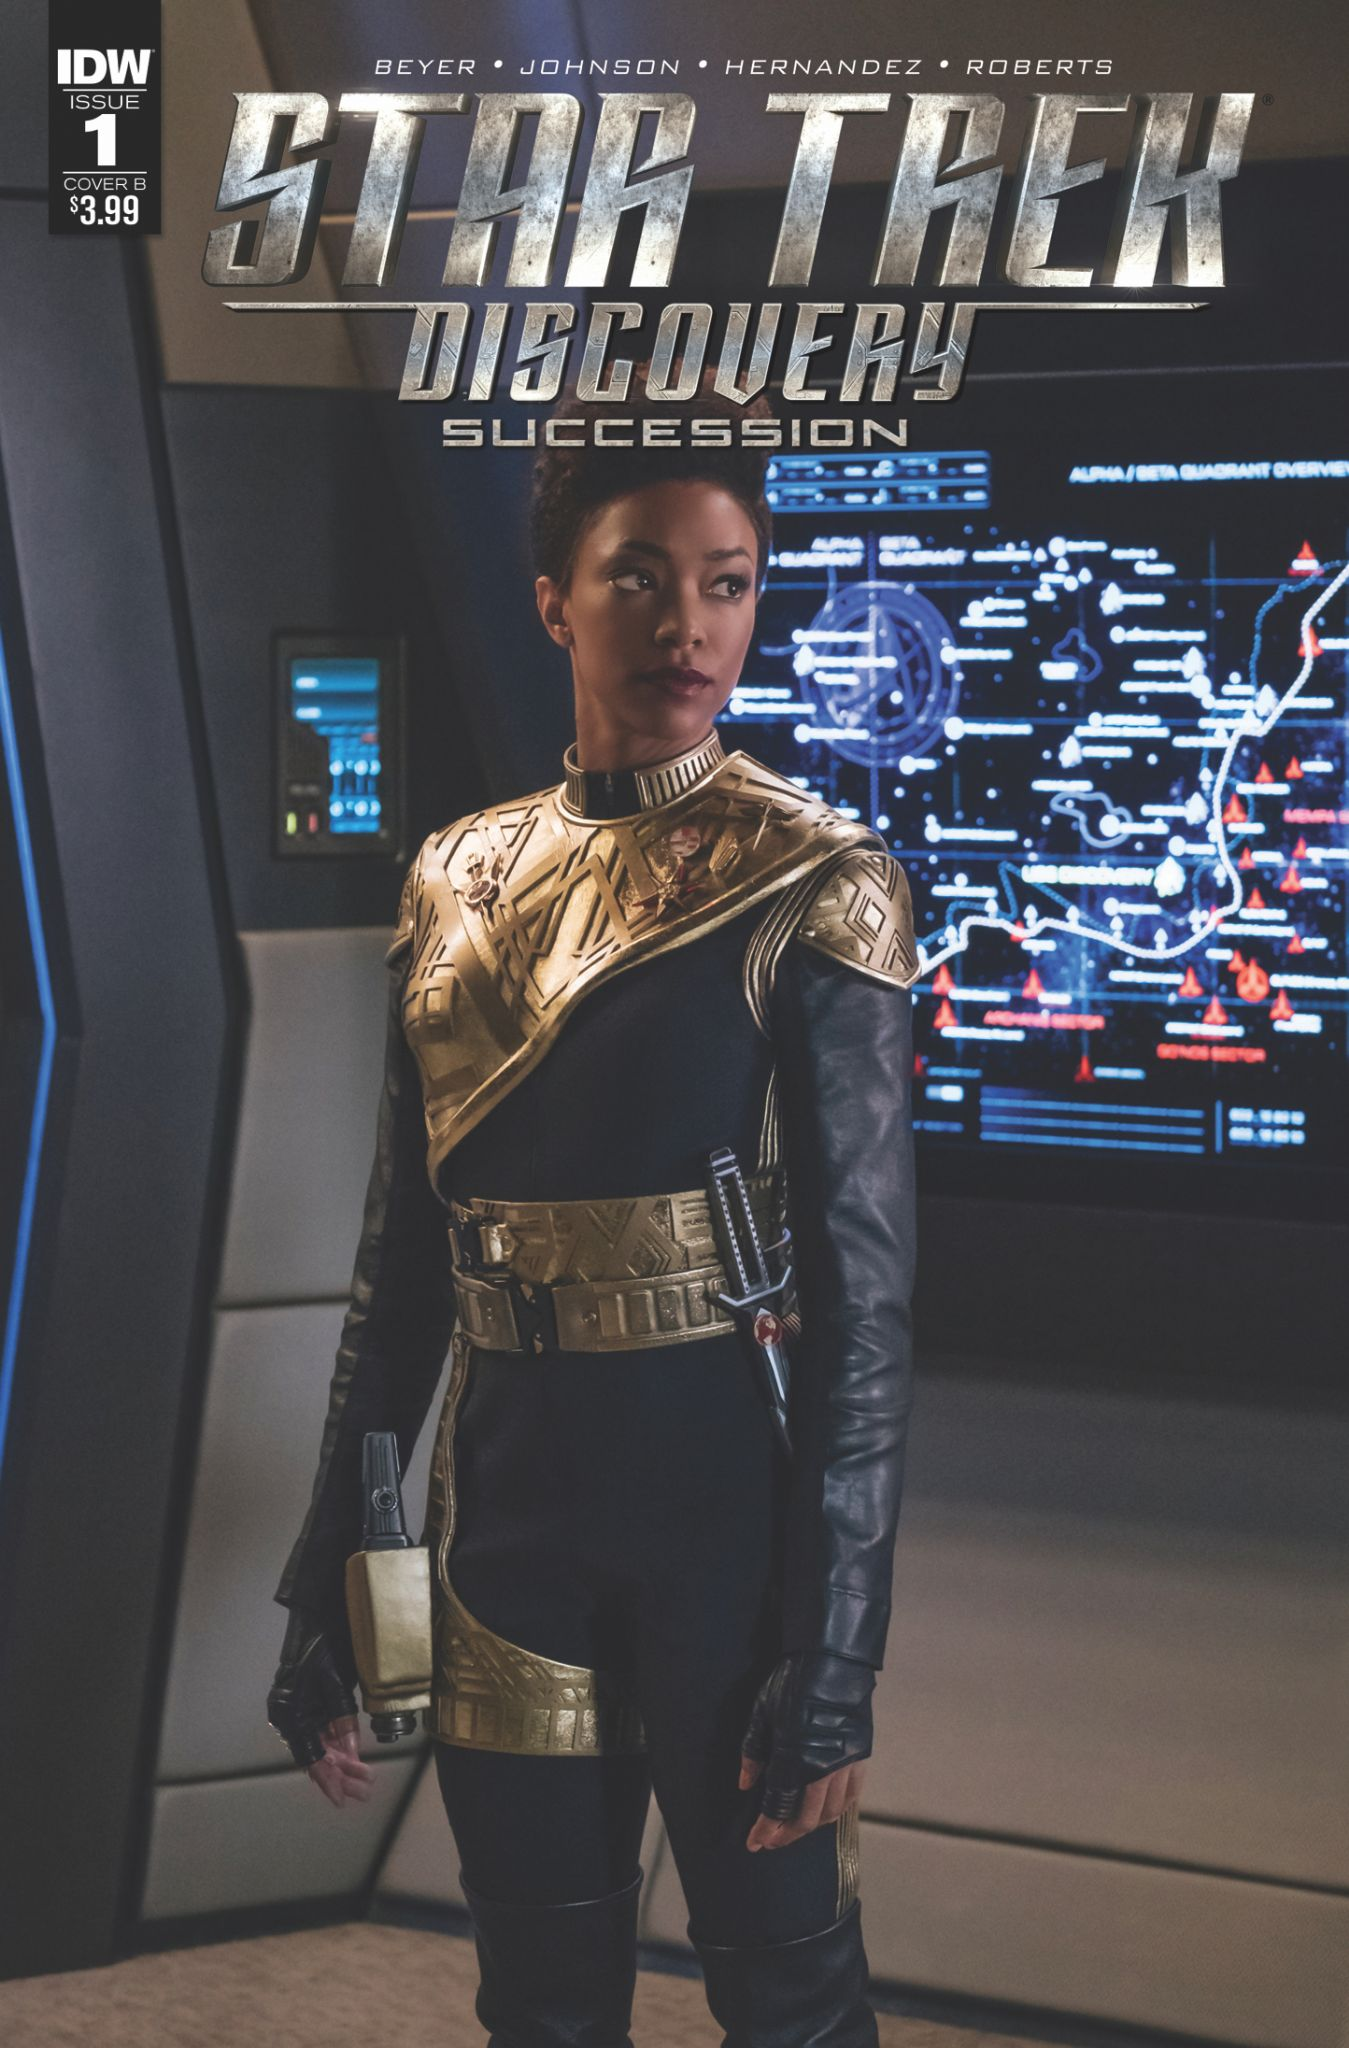 STAR TREK DISCOVERY: SUCCESSION (MS 4)